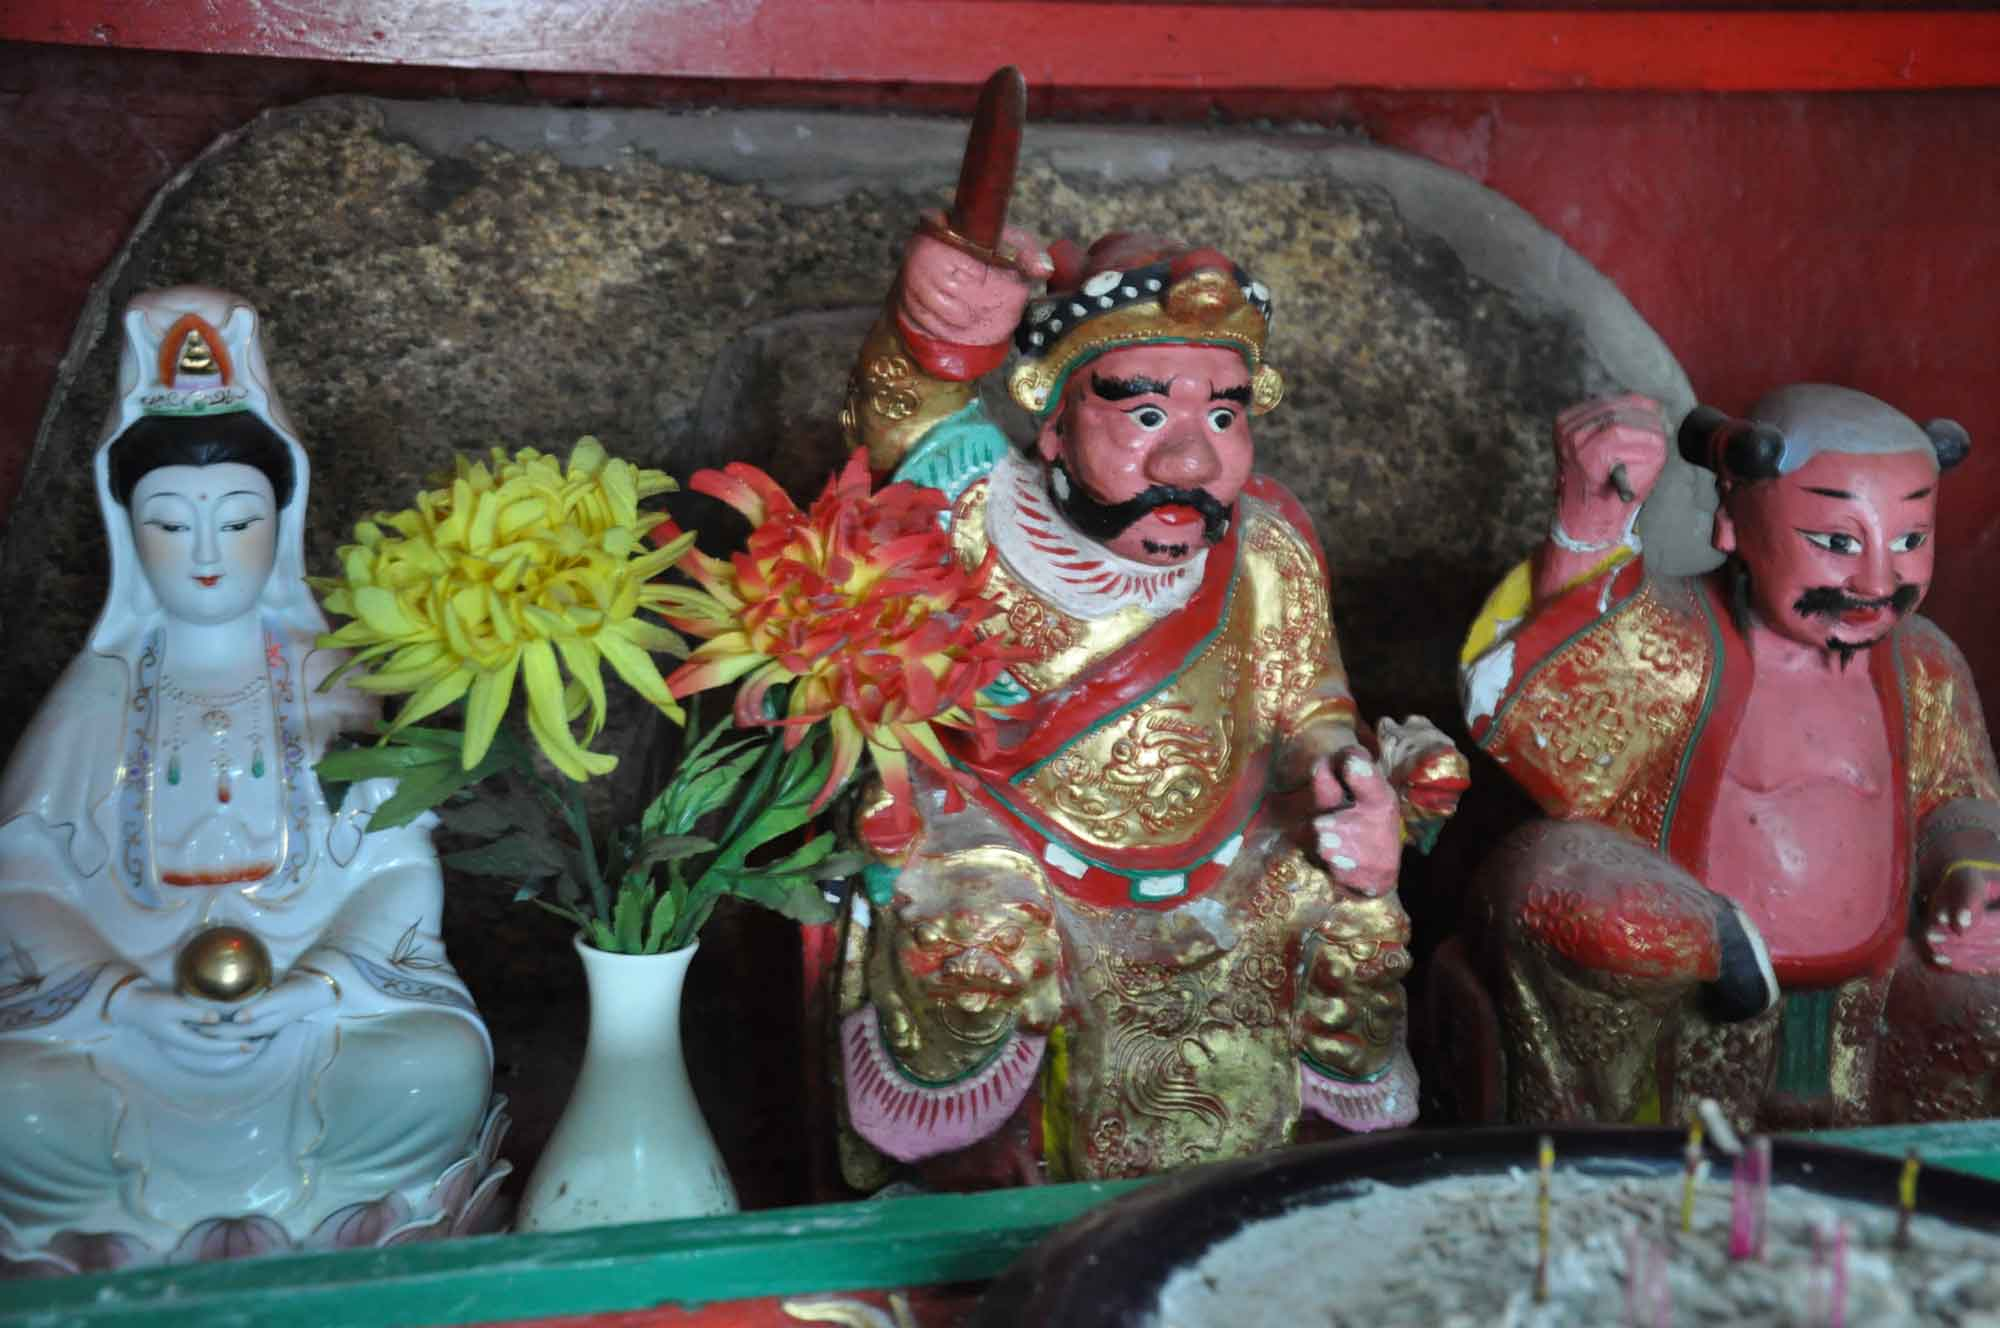 Coloane Temples: Tai Wong Temple deities